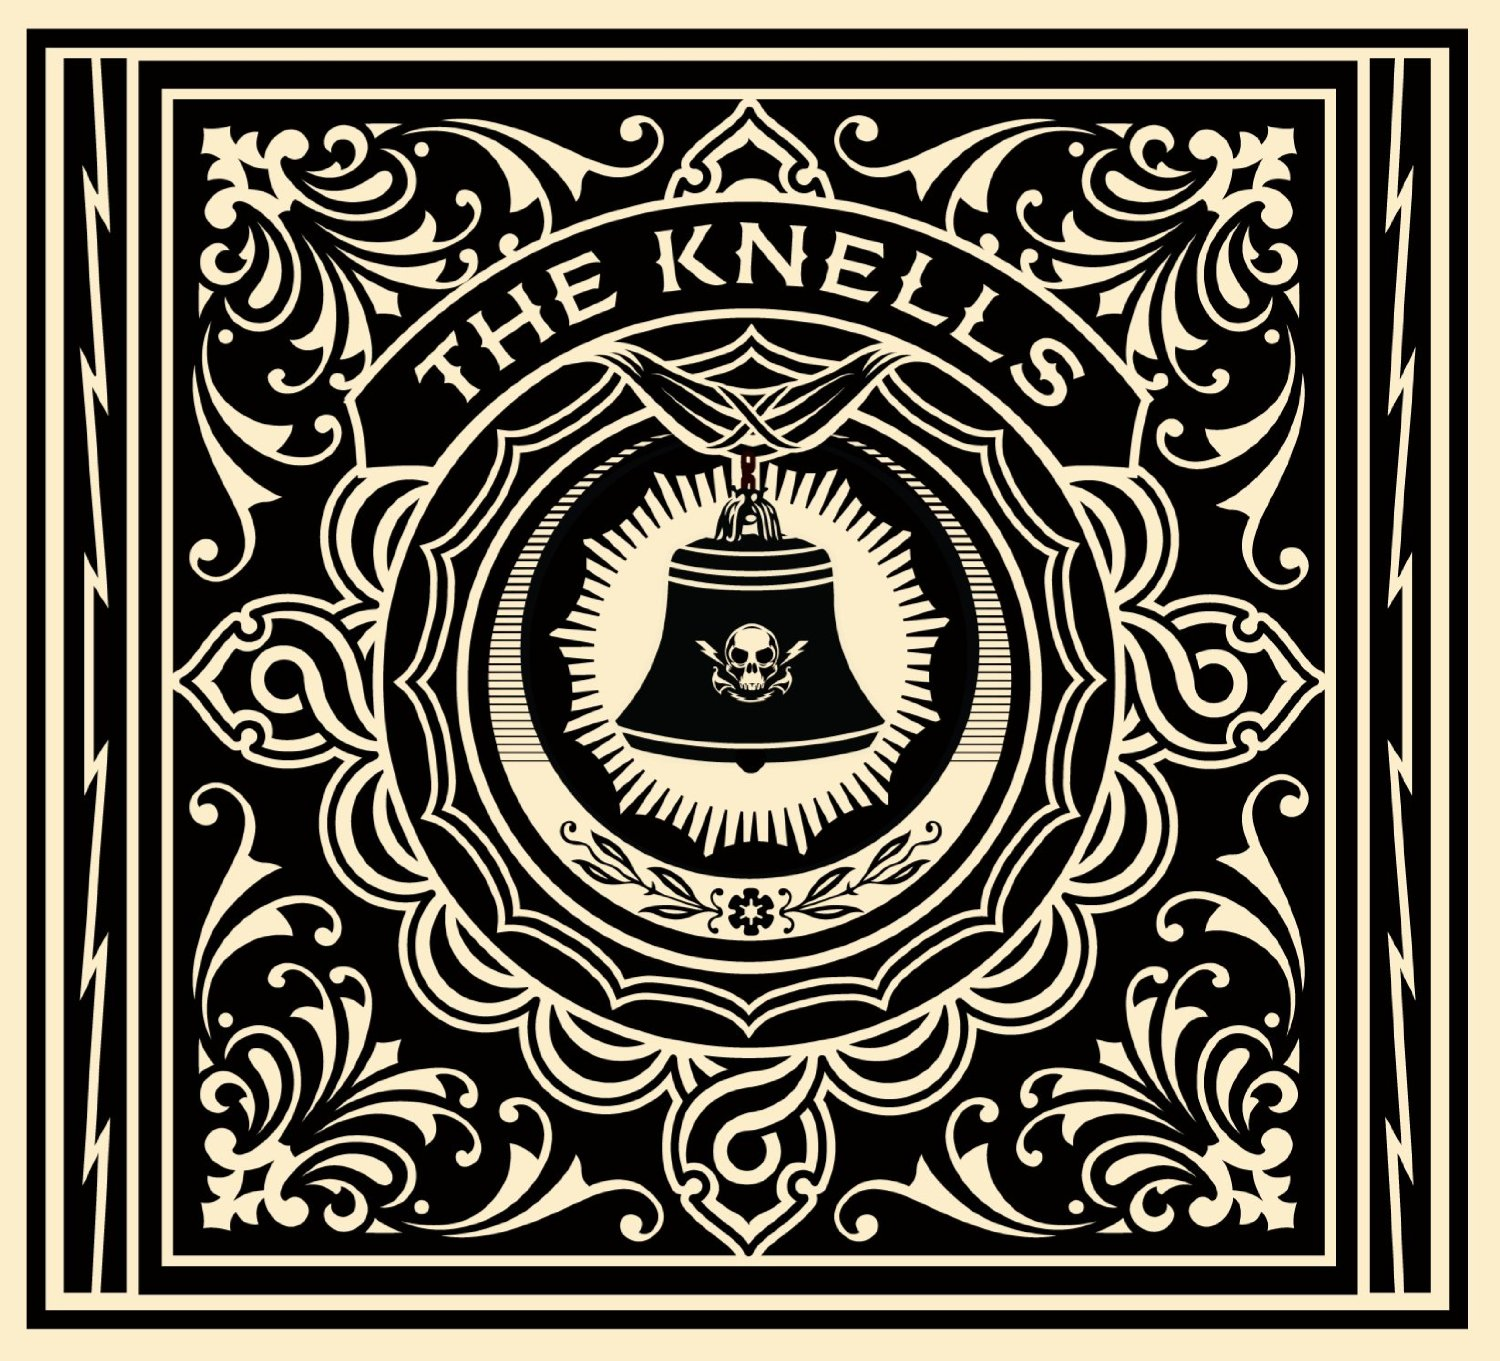 The Knells — The Knells